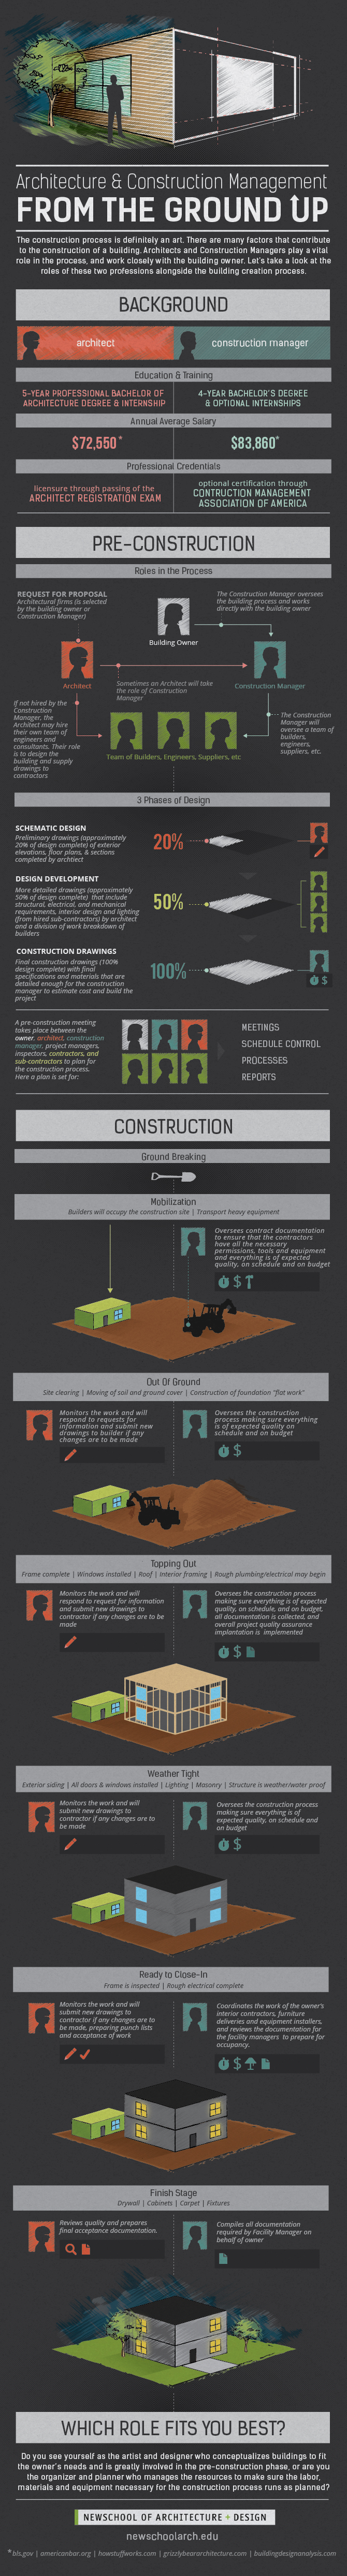 Architecture clipart construction manager NewSchool Construction Management Architecture #infographic